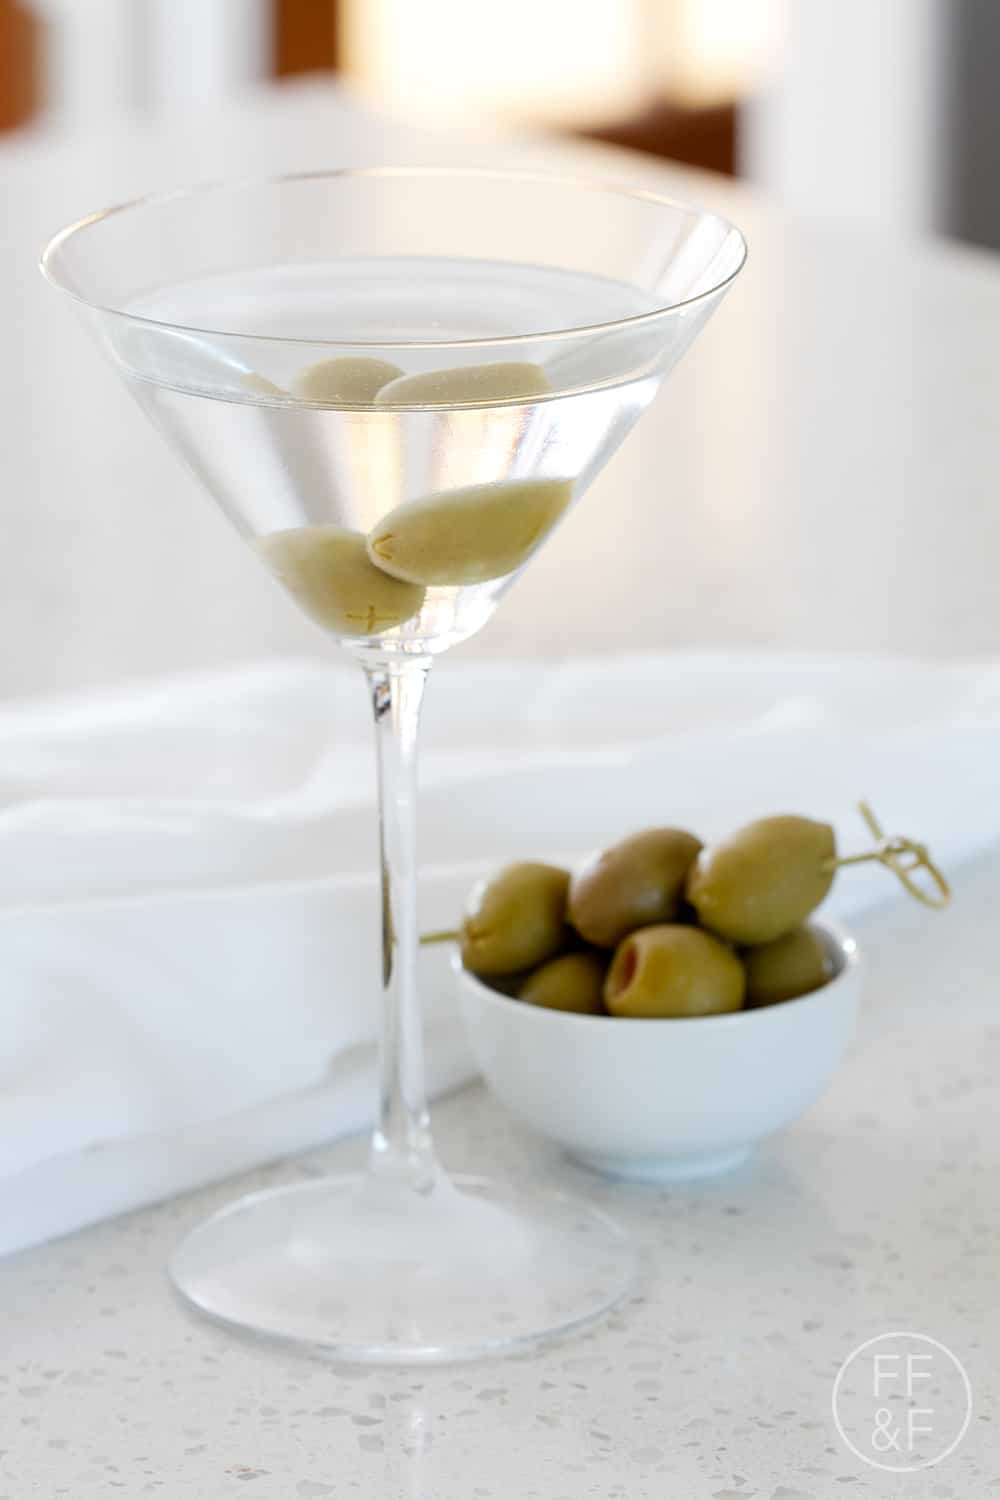 Bottoms Up: The Classic Dirty Martini